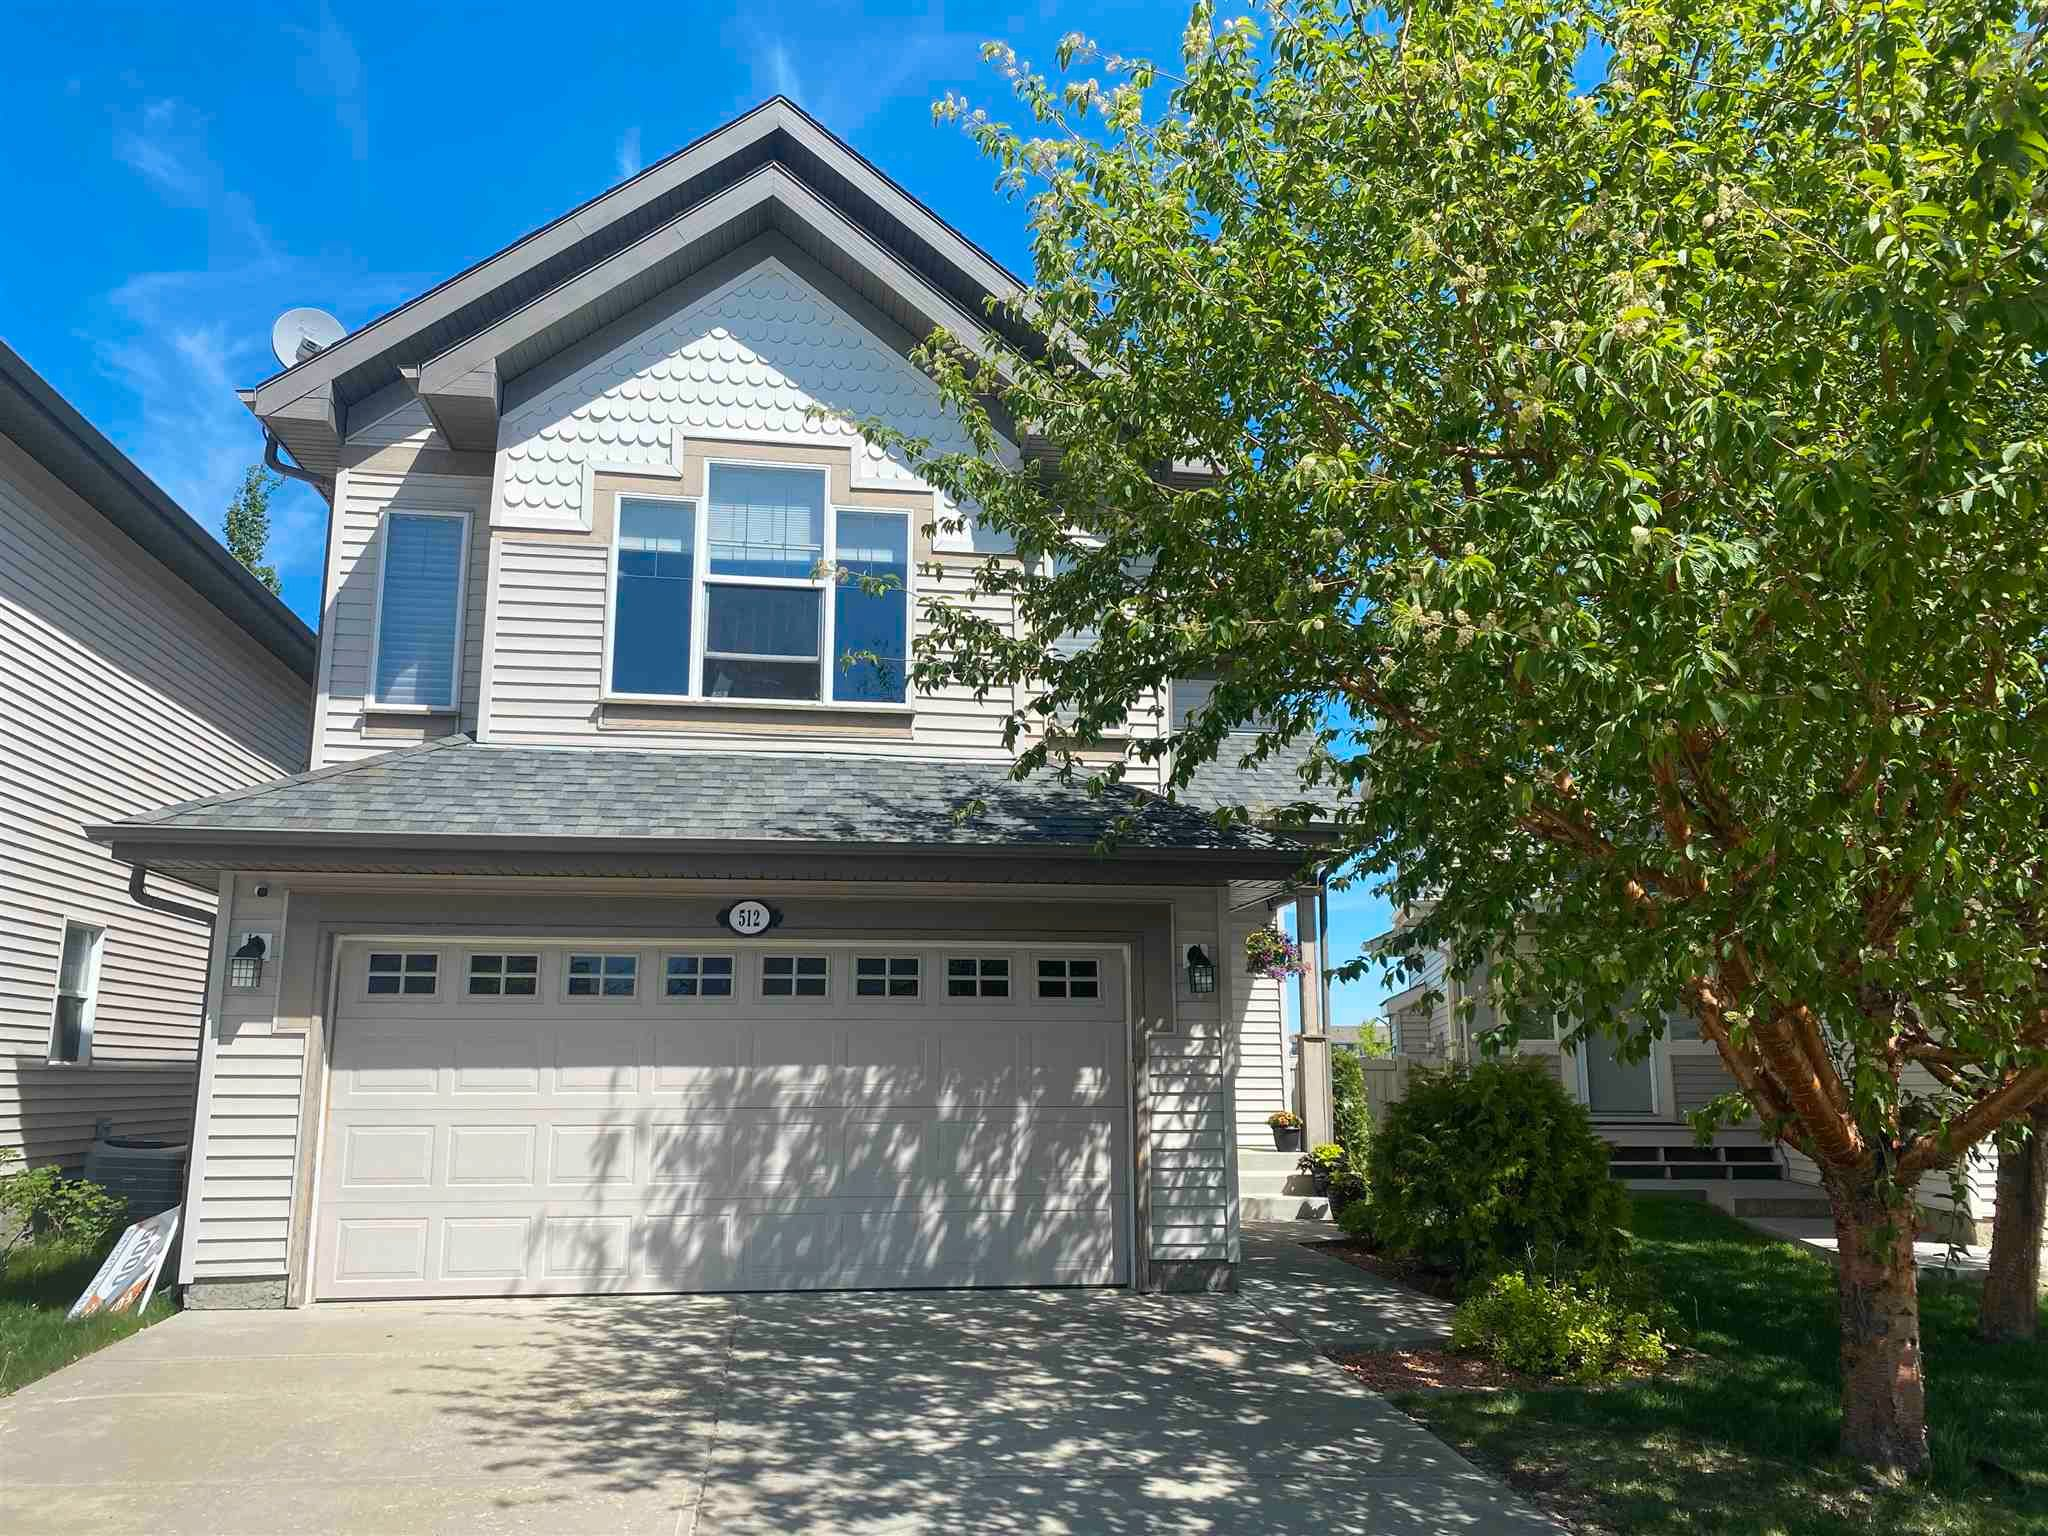 Main Photo: 512 CALDWELL Court in Edmonton: Zone 20 House for sale : MLS®# E4247370